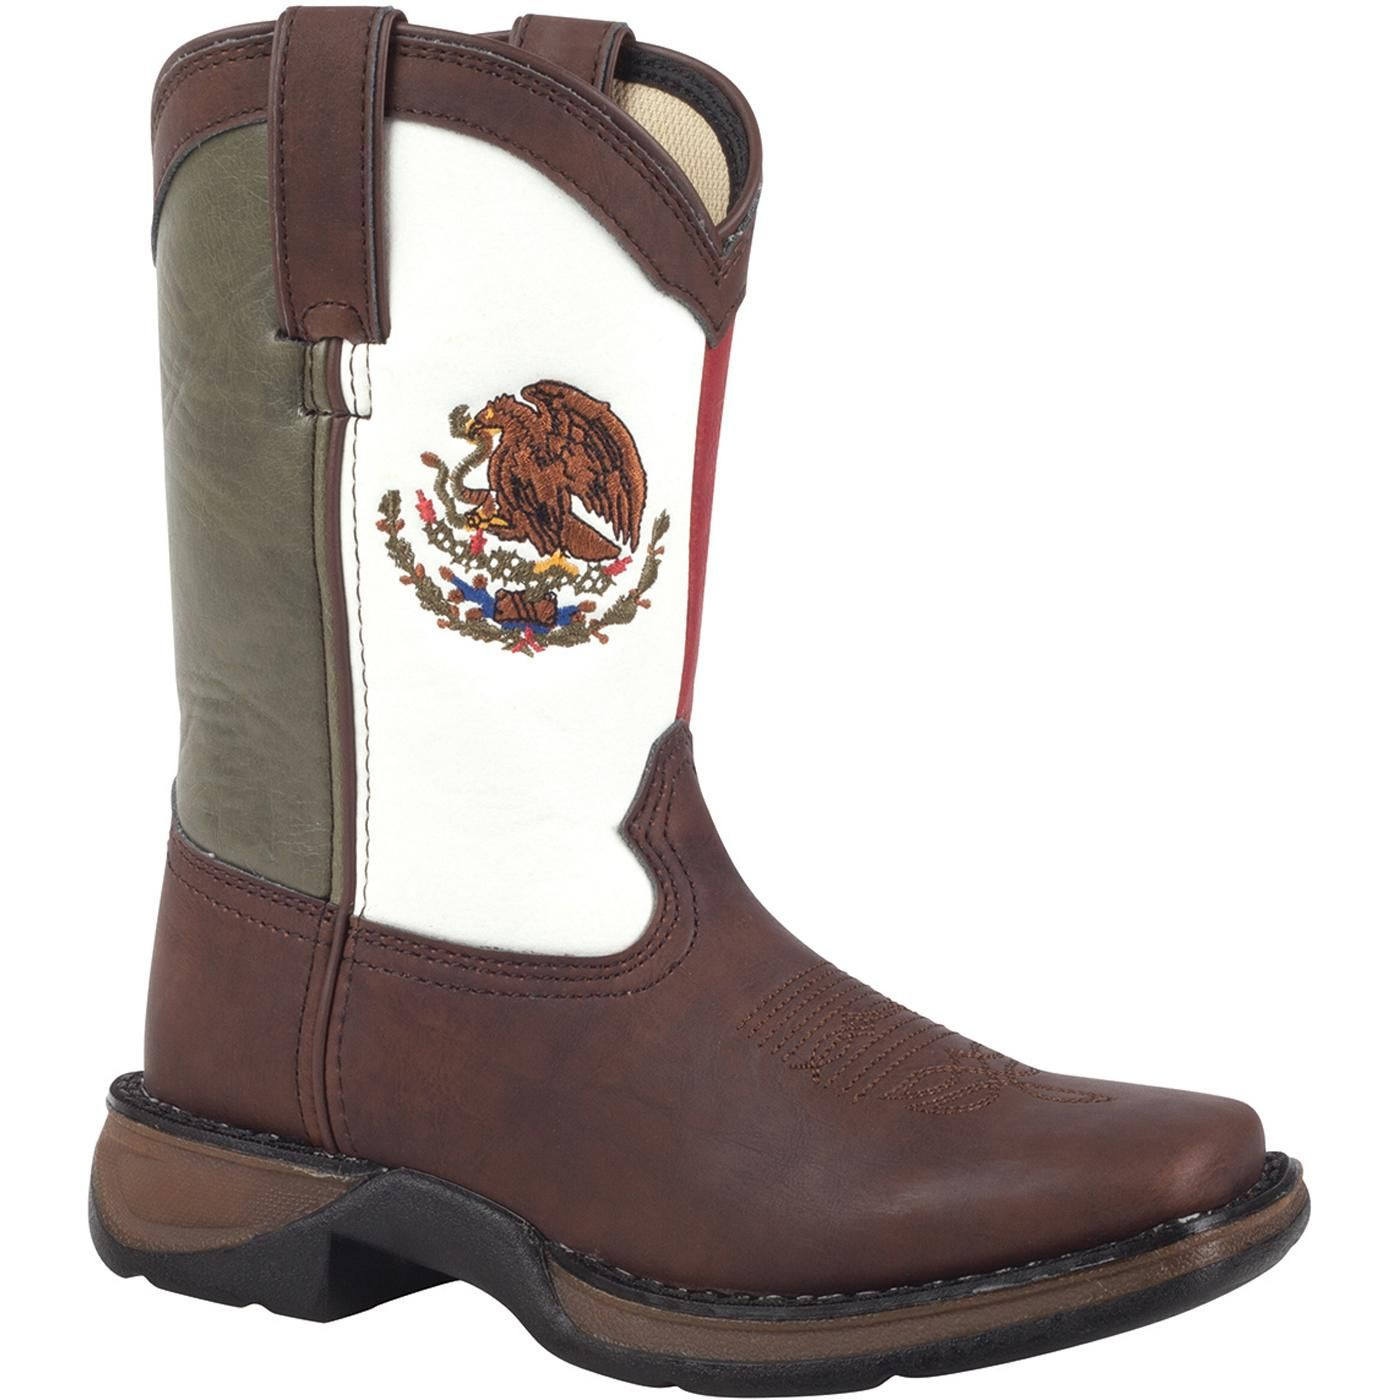 f747f0394a3 Lil' Durango Mexican Flag Kid's Western Boots – Style #BT002 ...